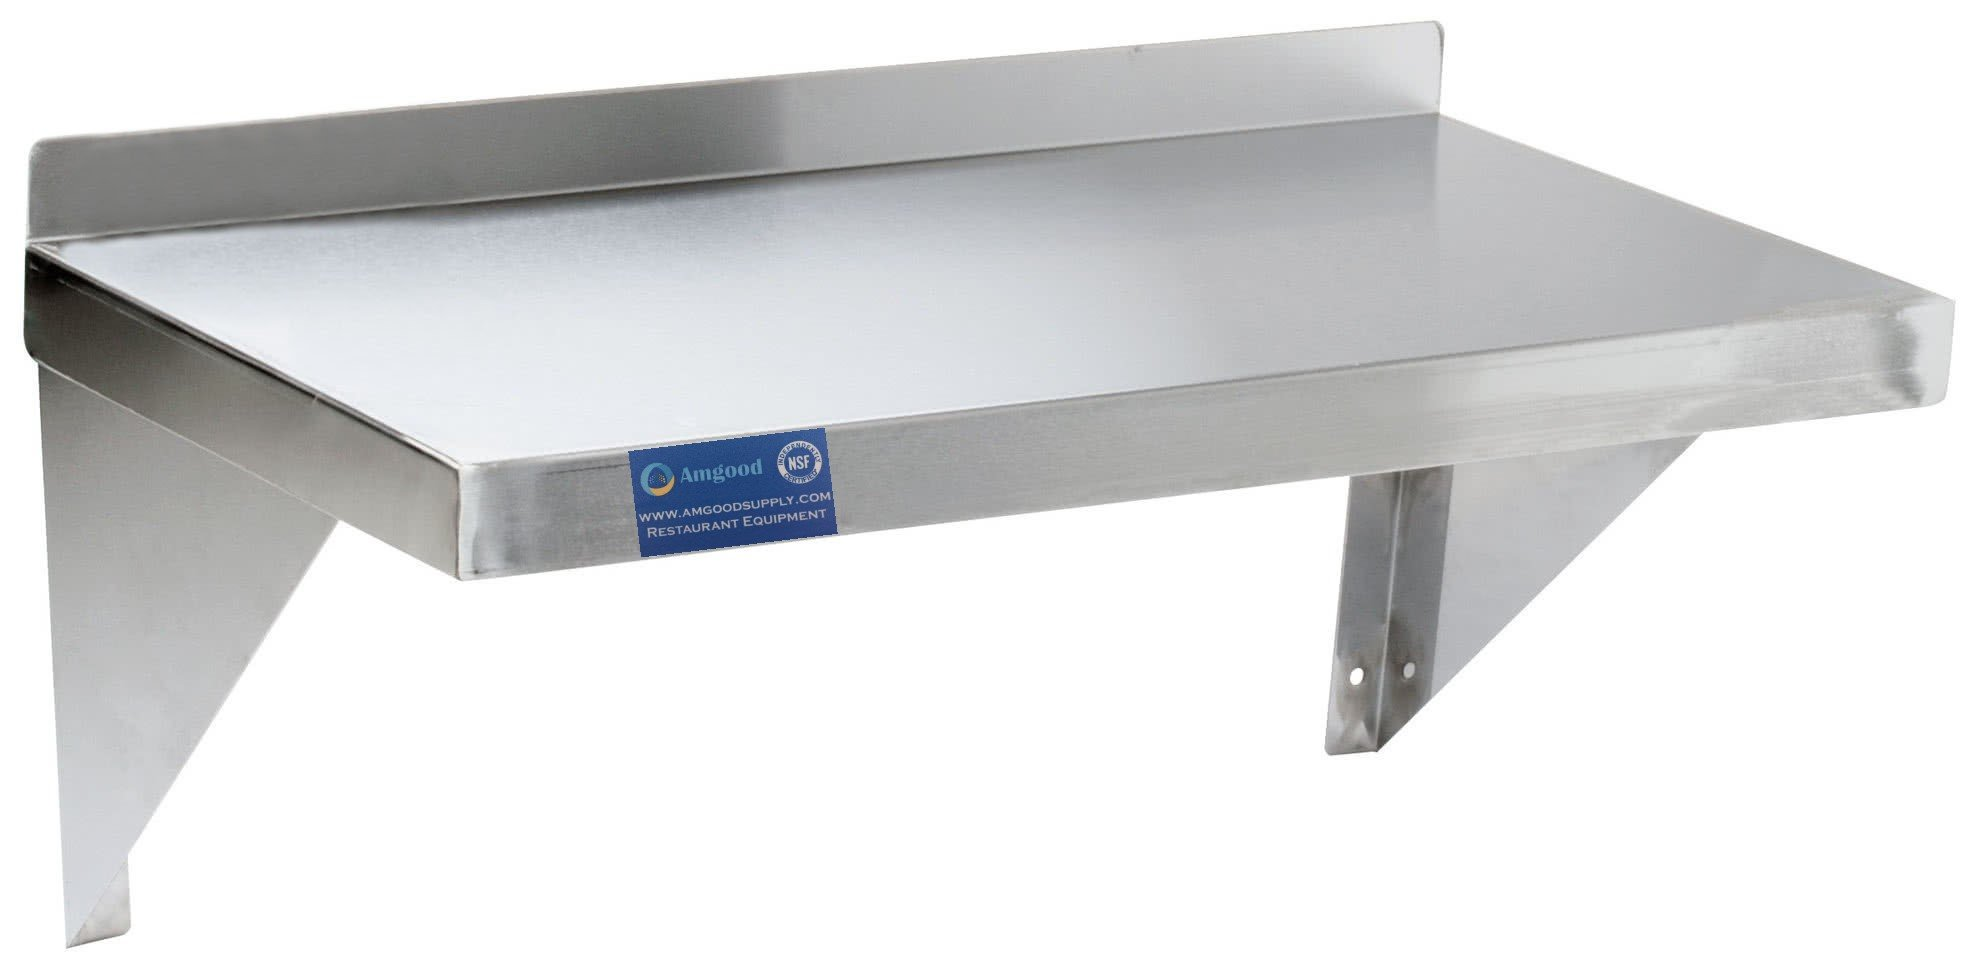 AmGood Stainless Steel Wall Shelf - Heavy Duty, Commercial Grade, Wall Mount, NSF Certified (18'' Width x 48'' Length)